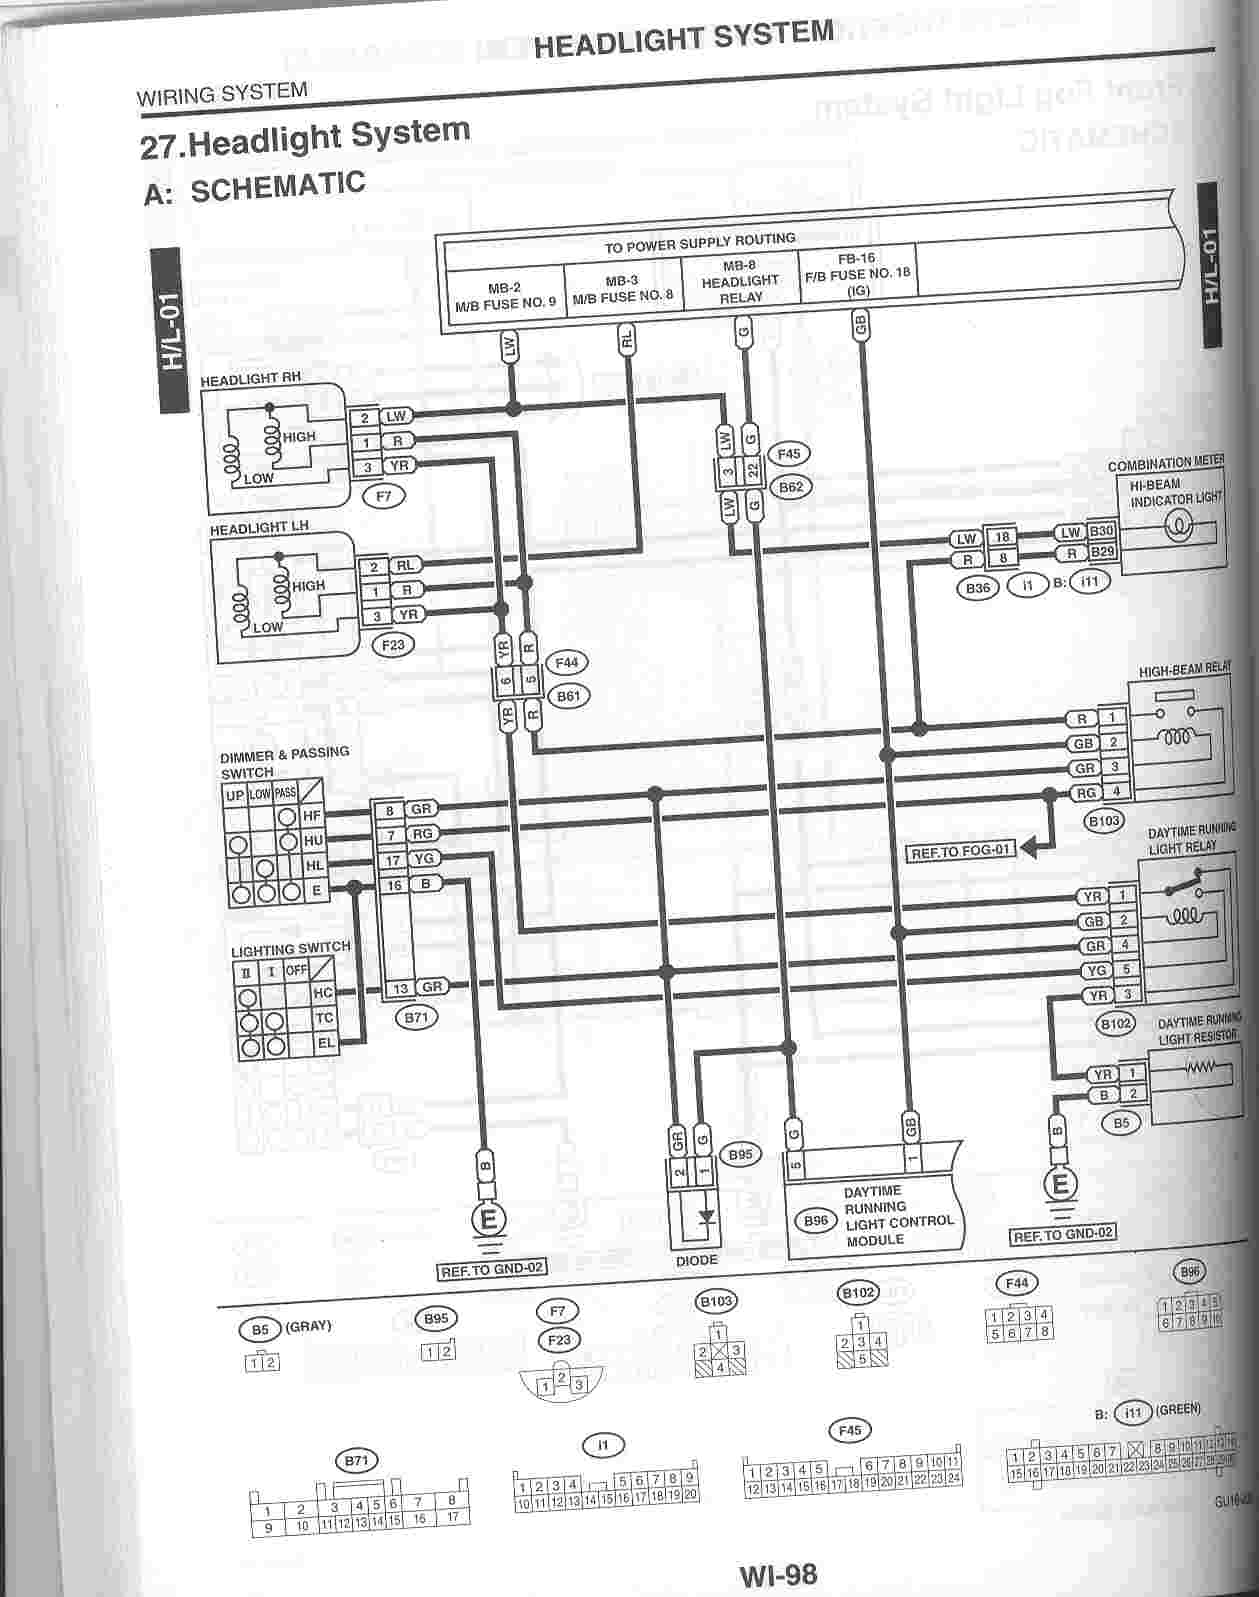 Scan Of Headlight Wiring Diagram From '02 Service Manual - Nasioc - Headlight Relay Wiring Diagram